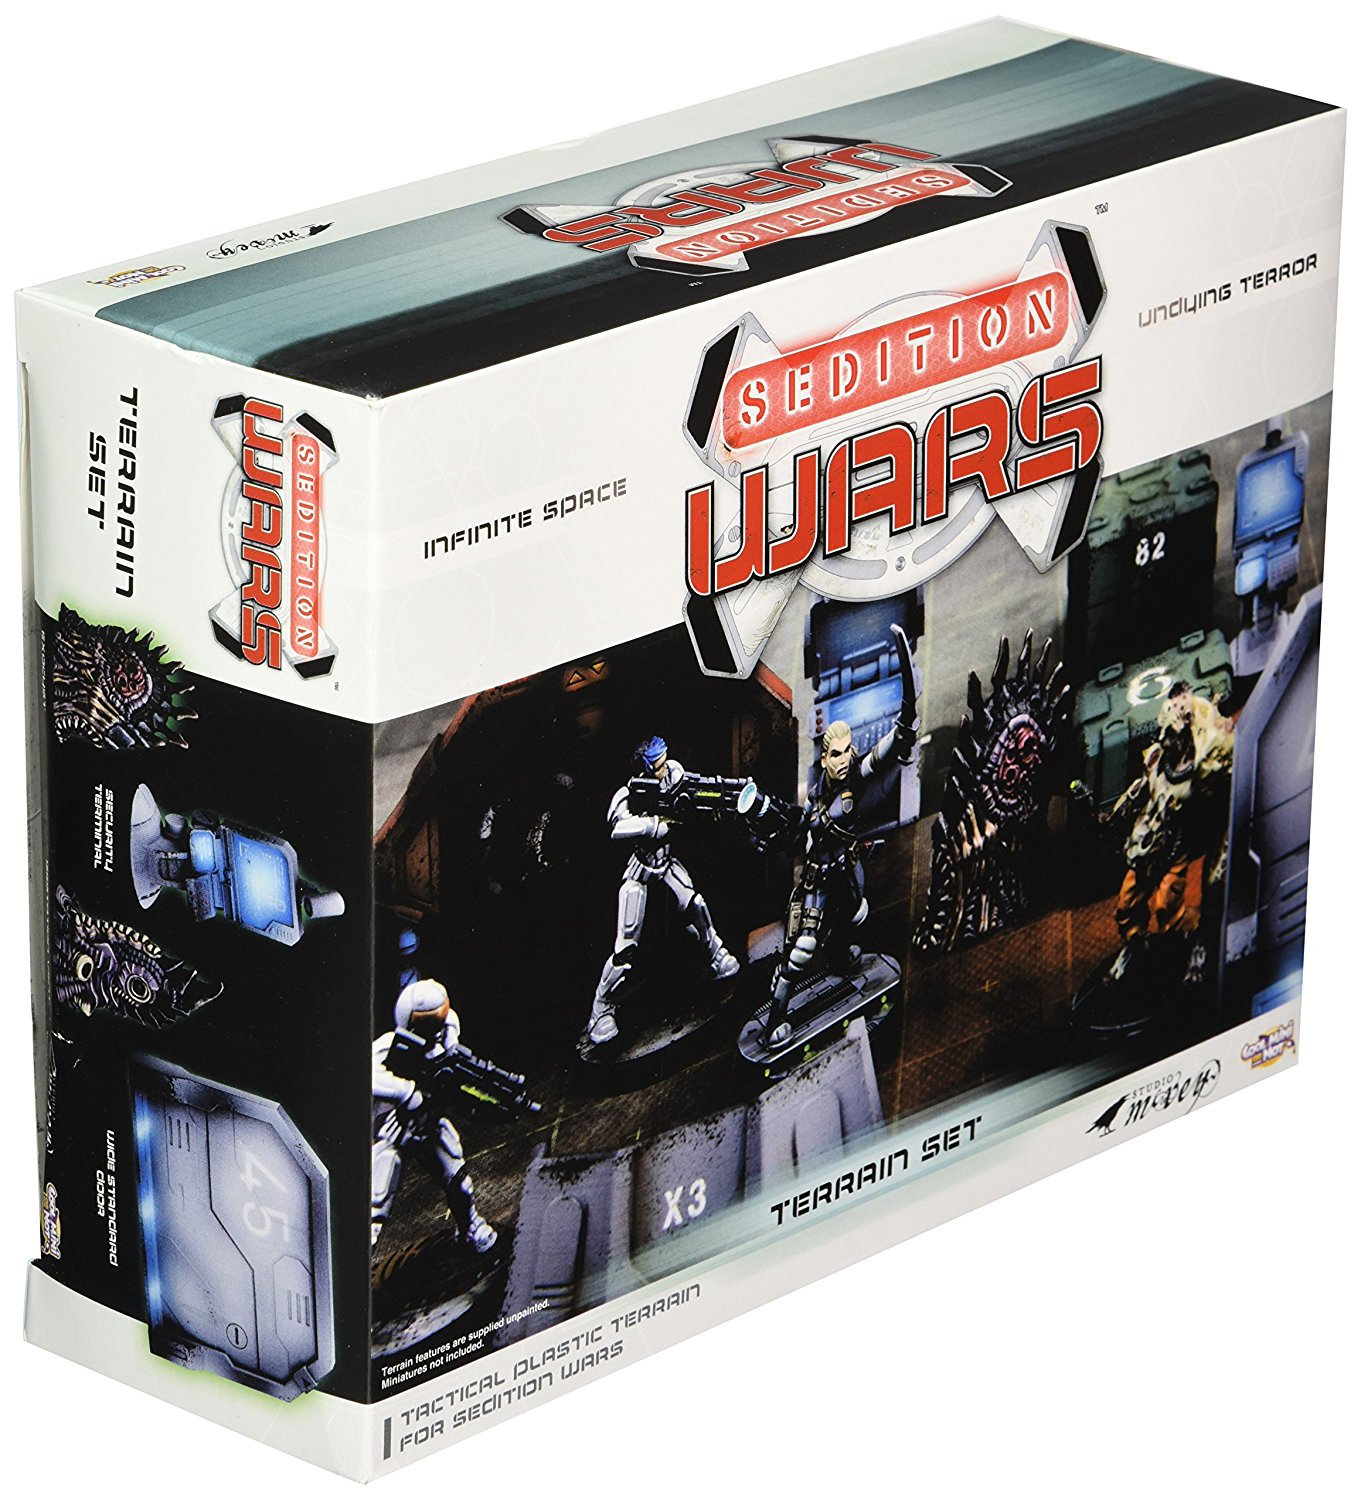 SEDITION WARS: TERRAIN SET (SALE)